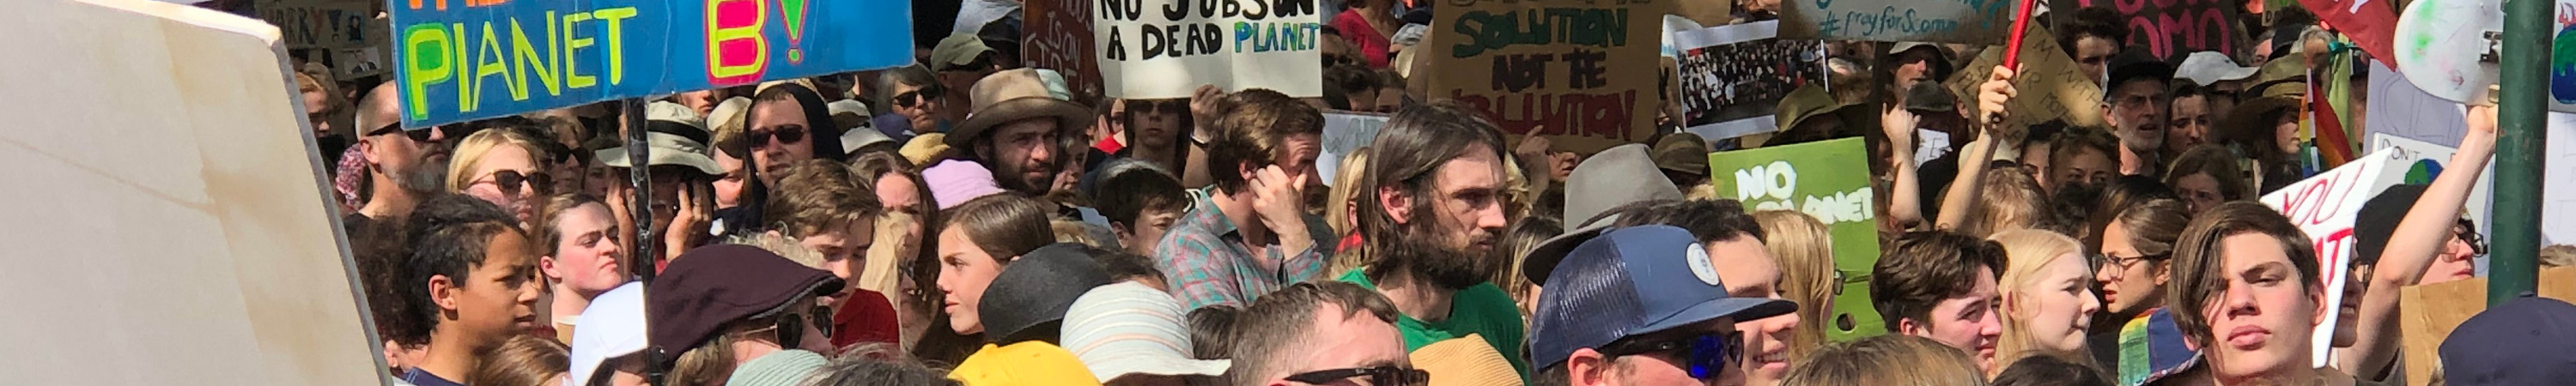 Protest, Climate Emergency